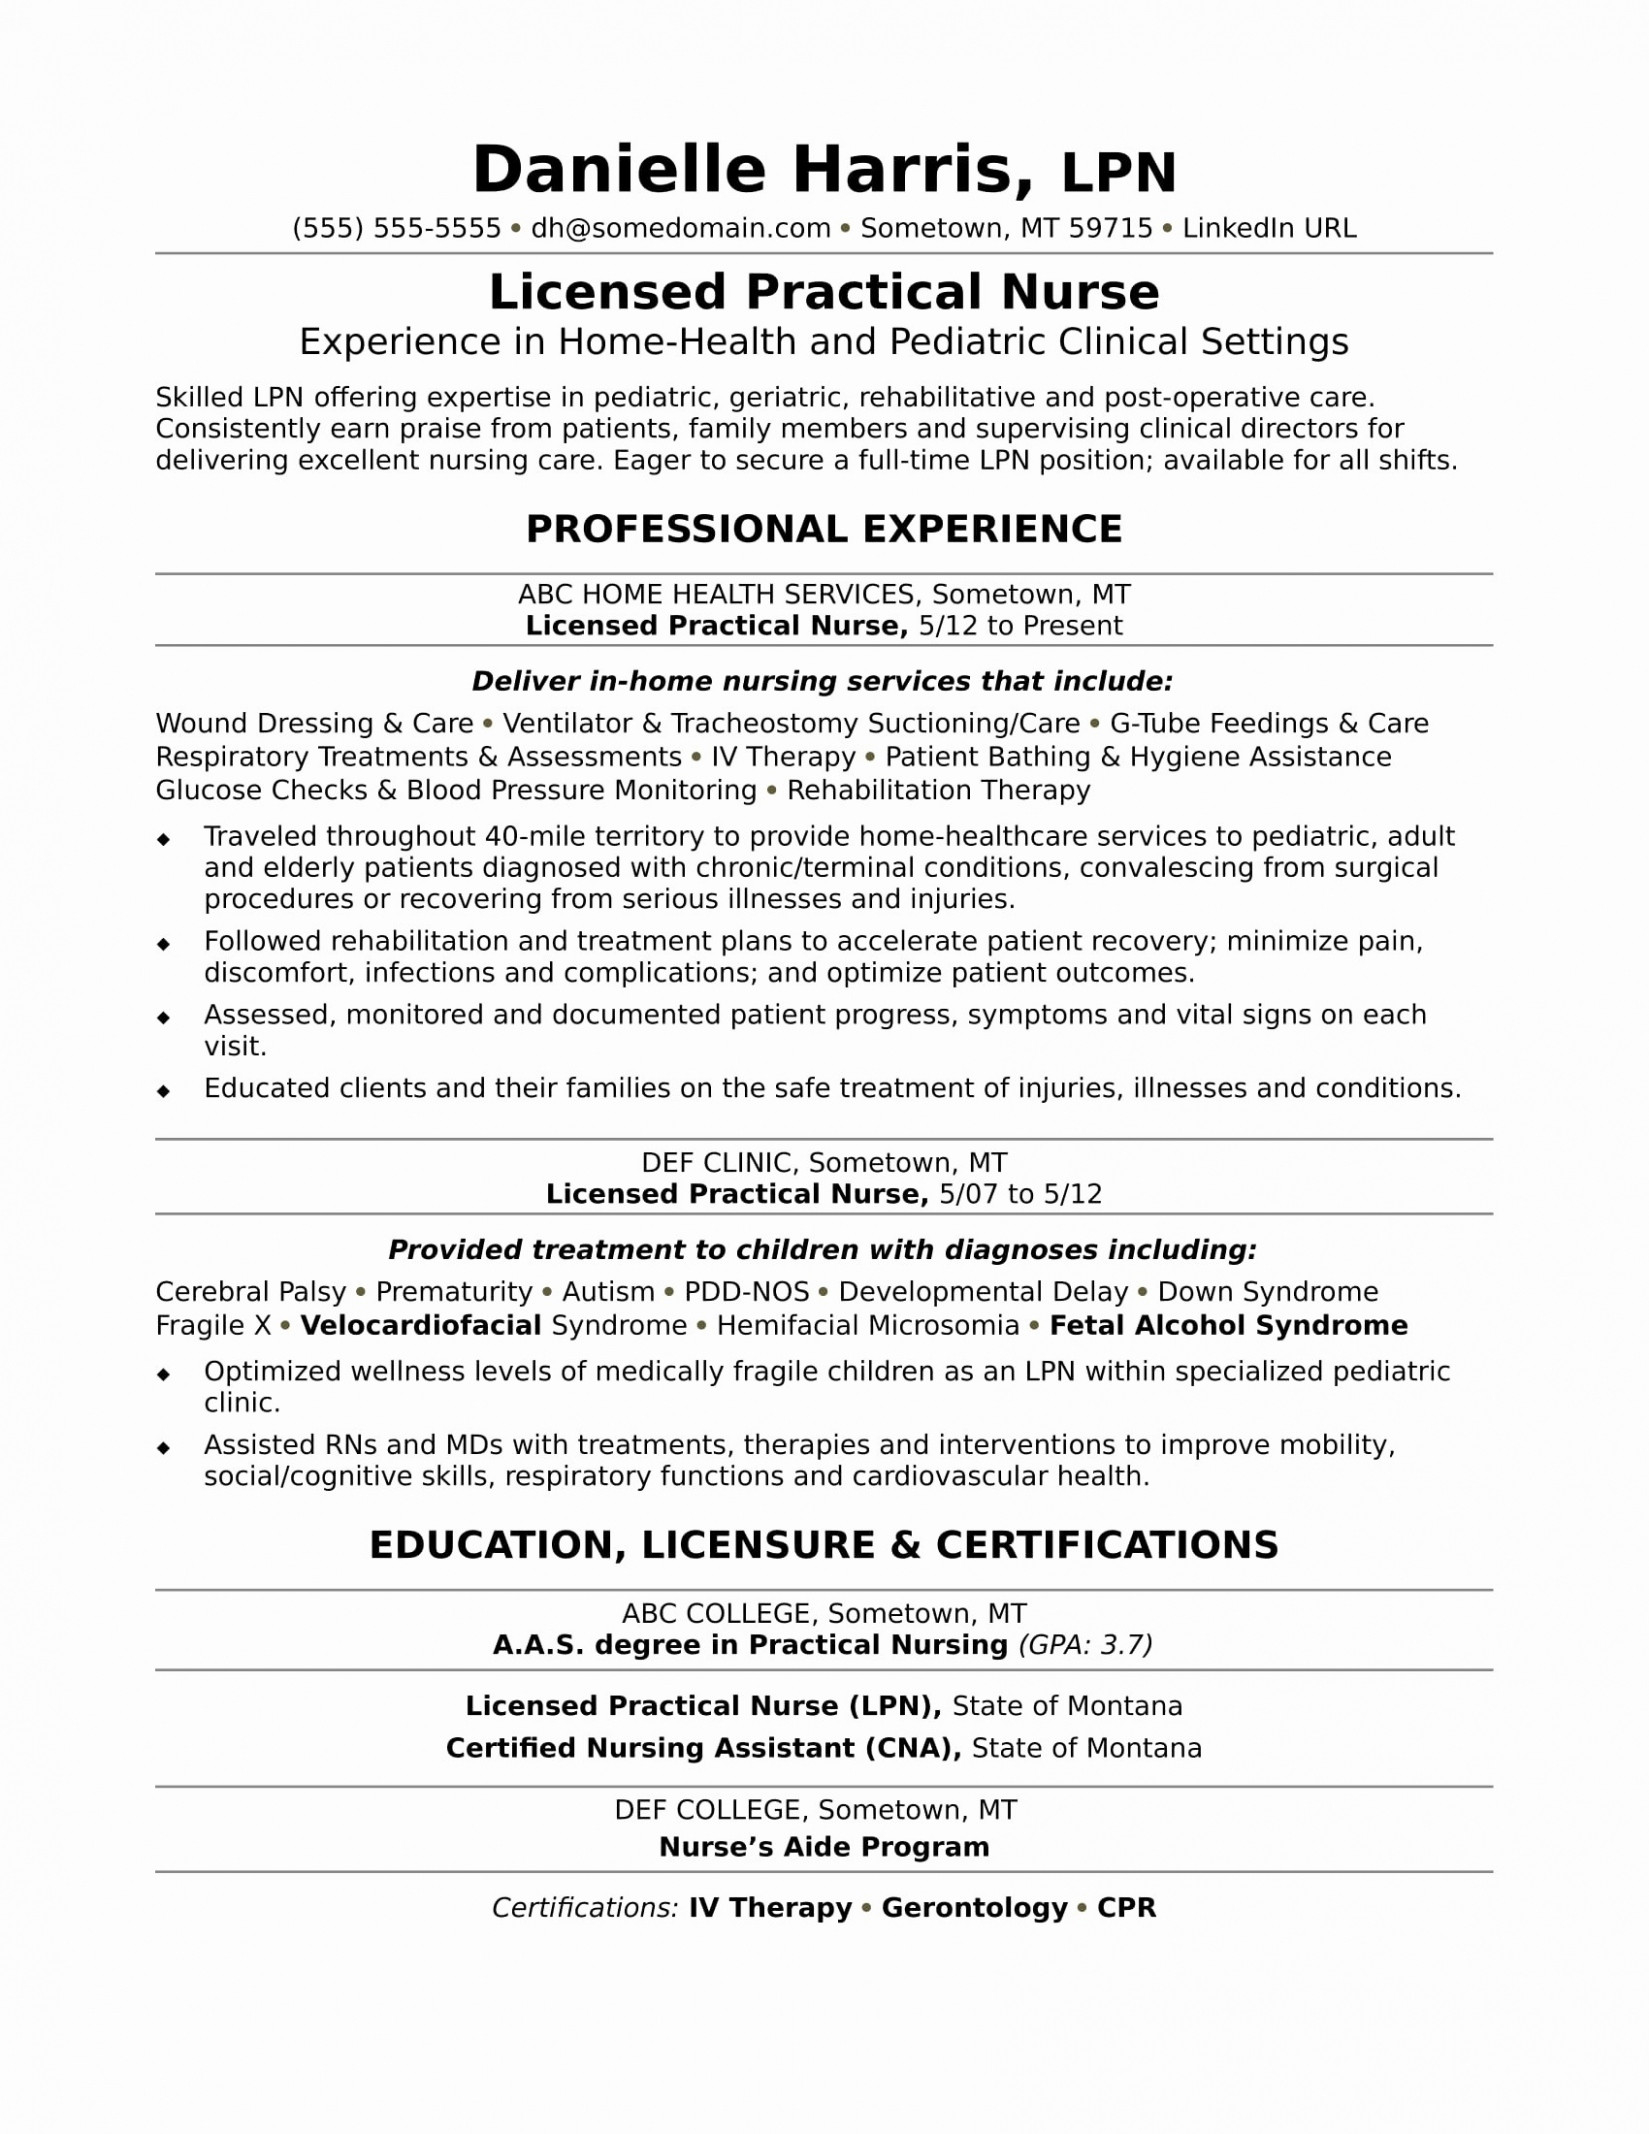 Effective Resume Writing - Best Professional Nursing Resume Writers Vcuregistry